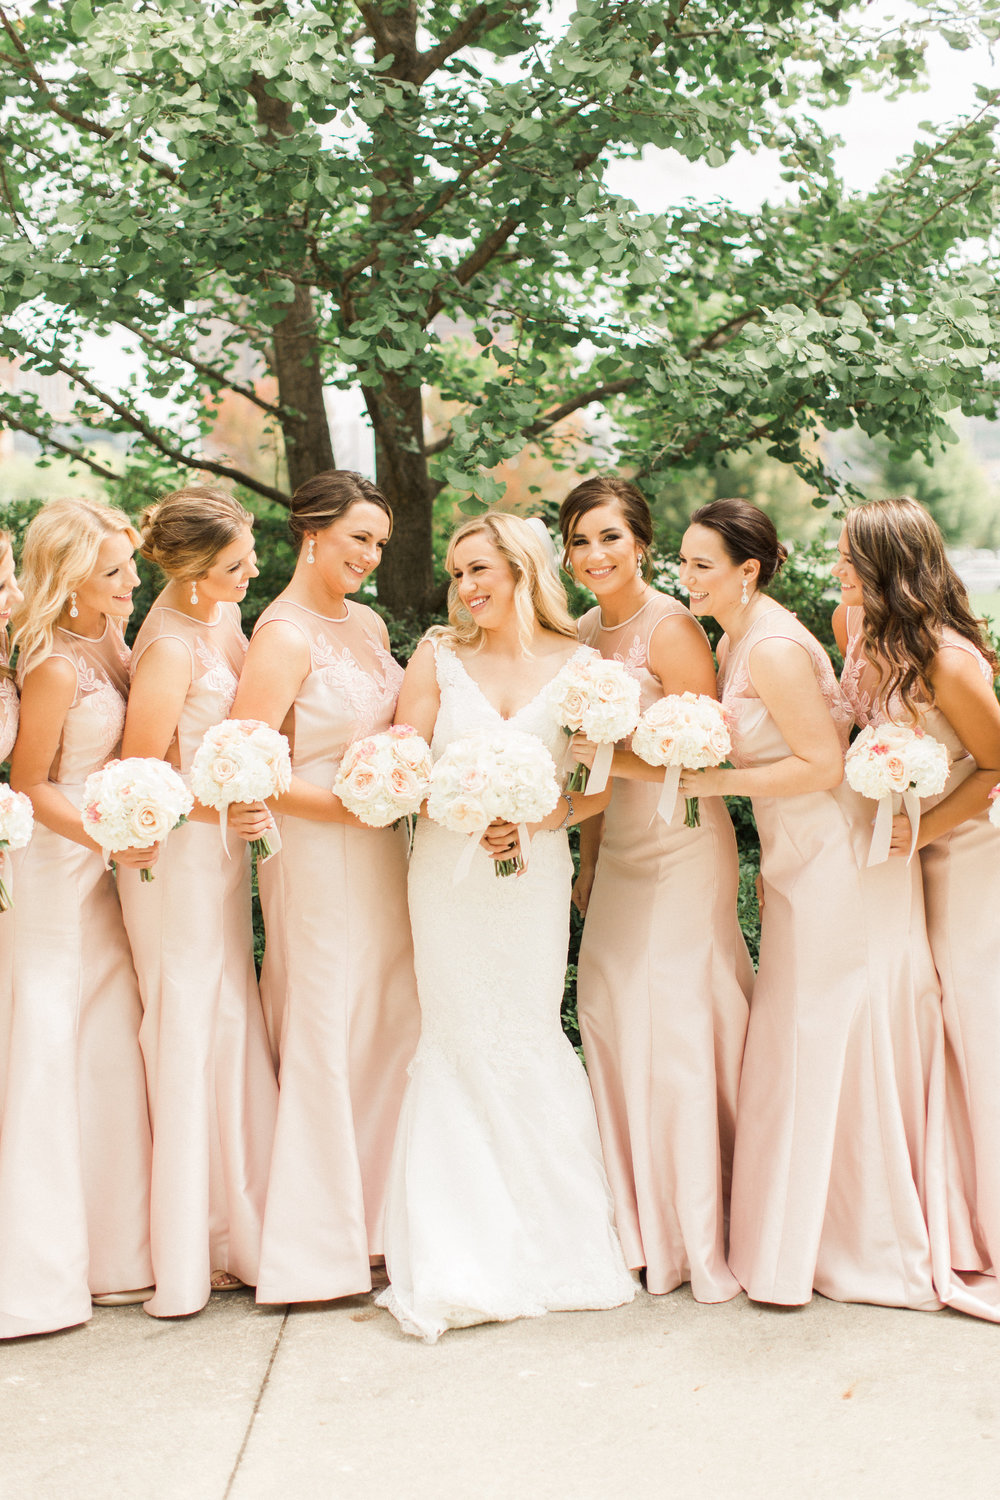 iowa-wedding-iowa-venue-blush-white-pink-bridesmaids-dresses-downtown-desmoines-planned-mostly-becky-weddings-outdoor-bridal-party-photos